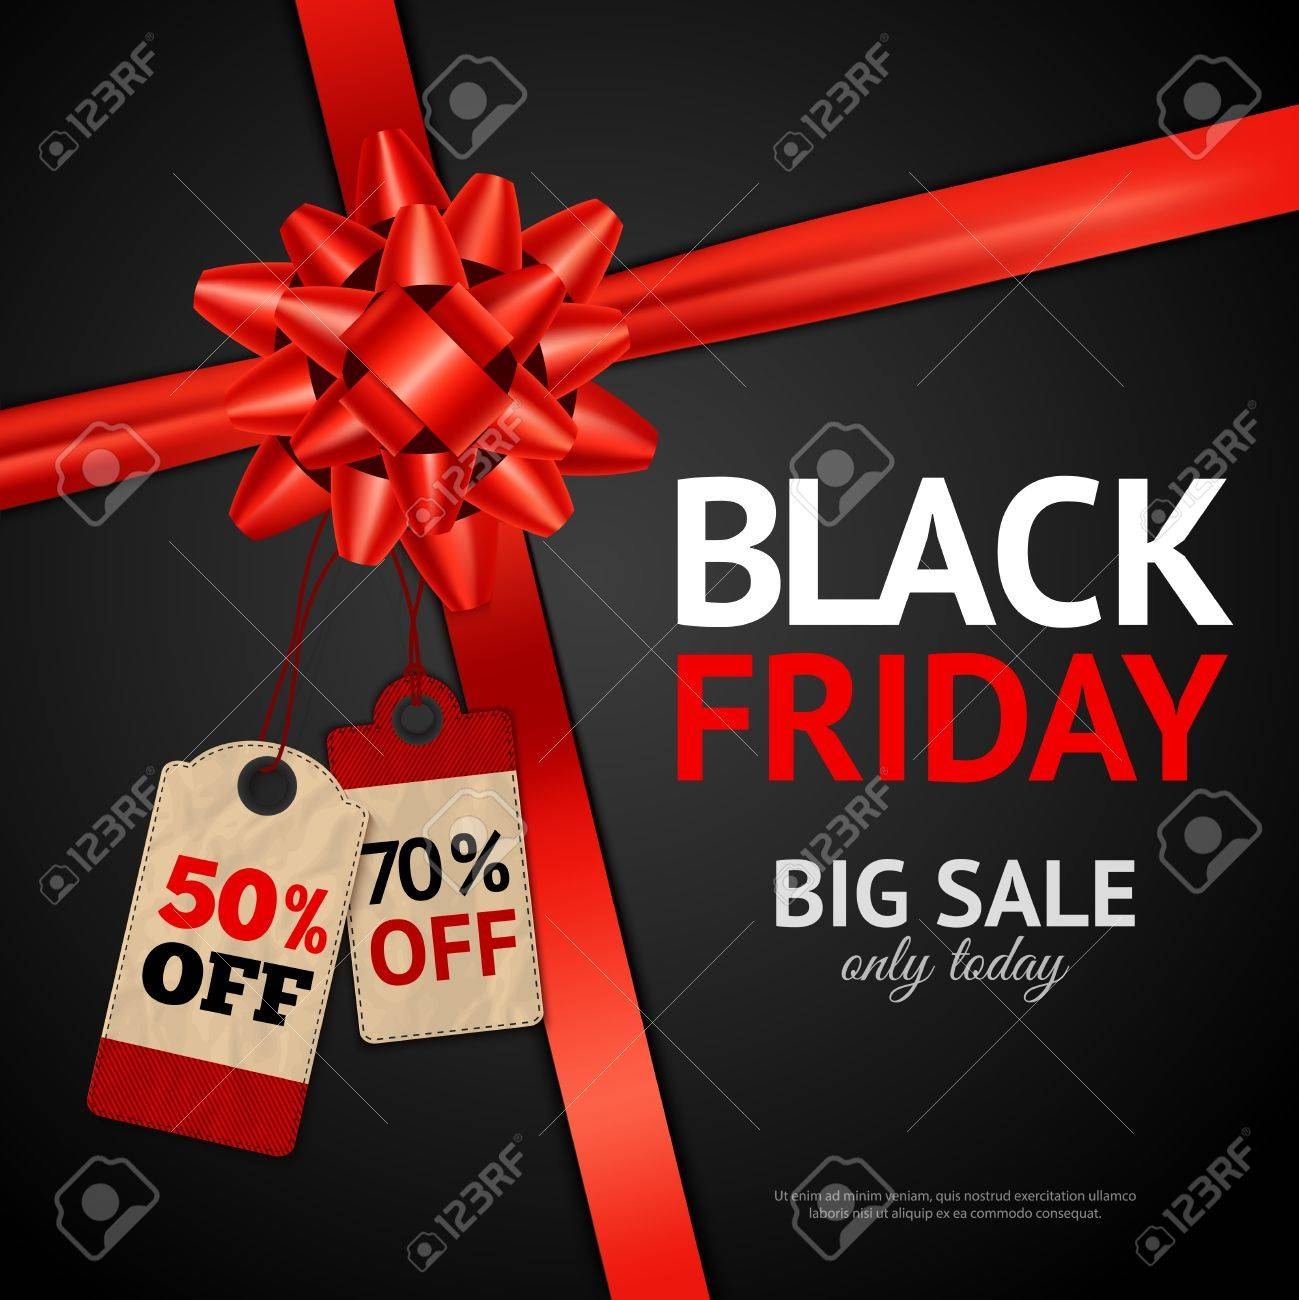 advertisement poster black friday